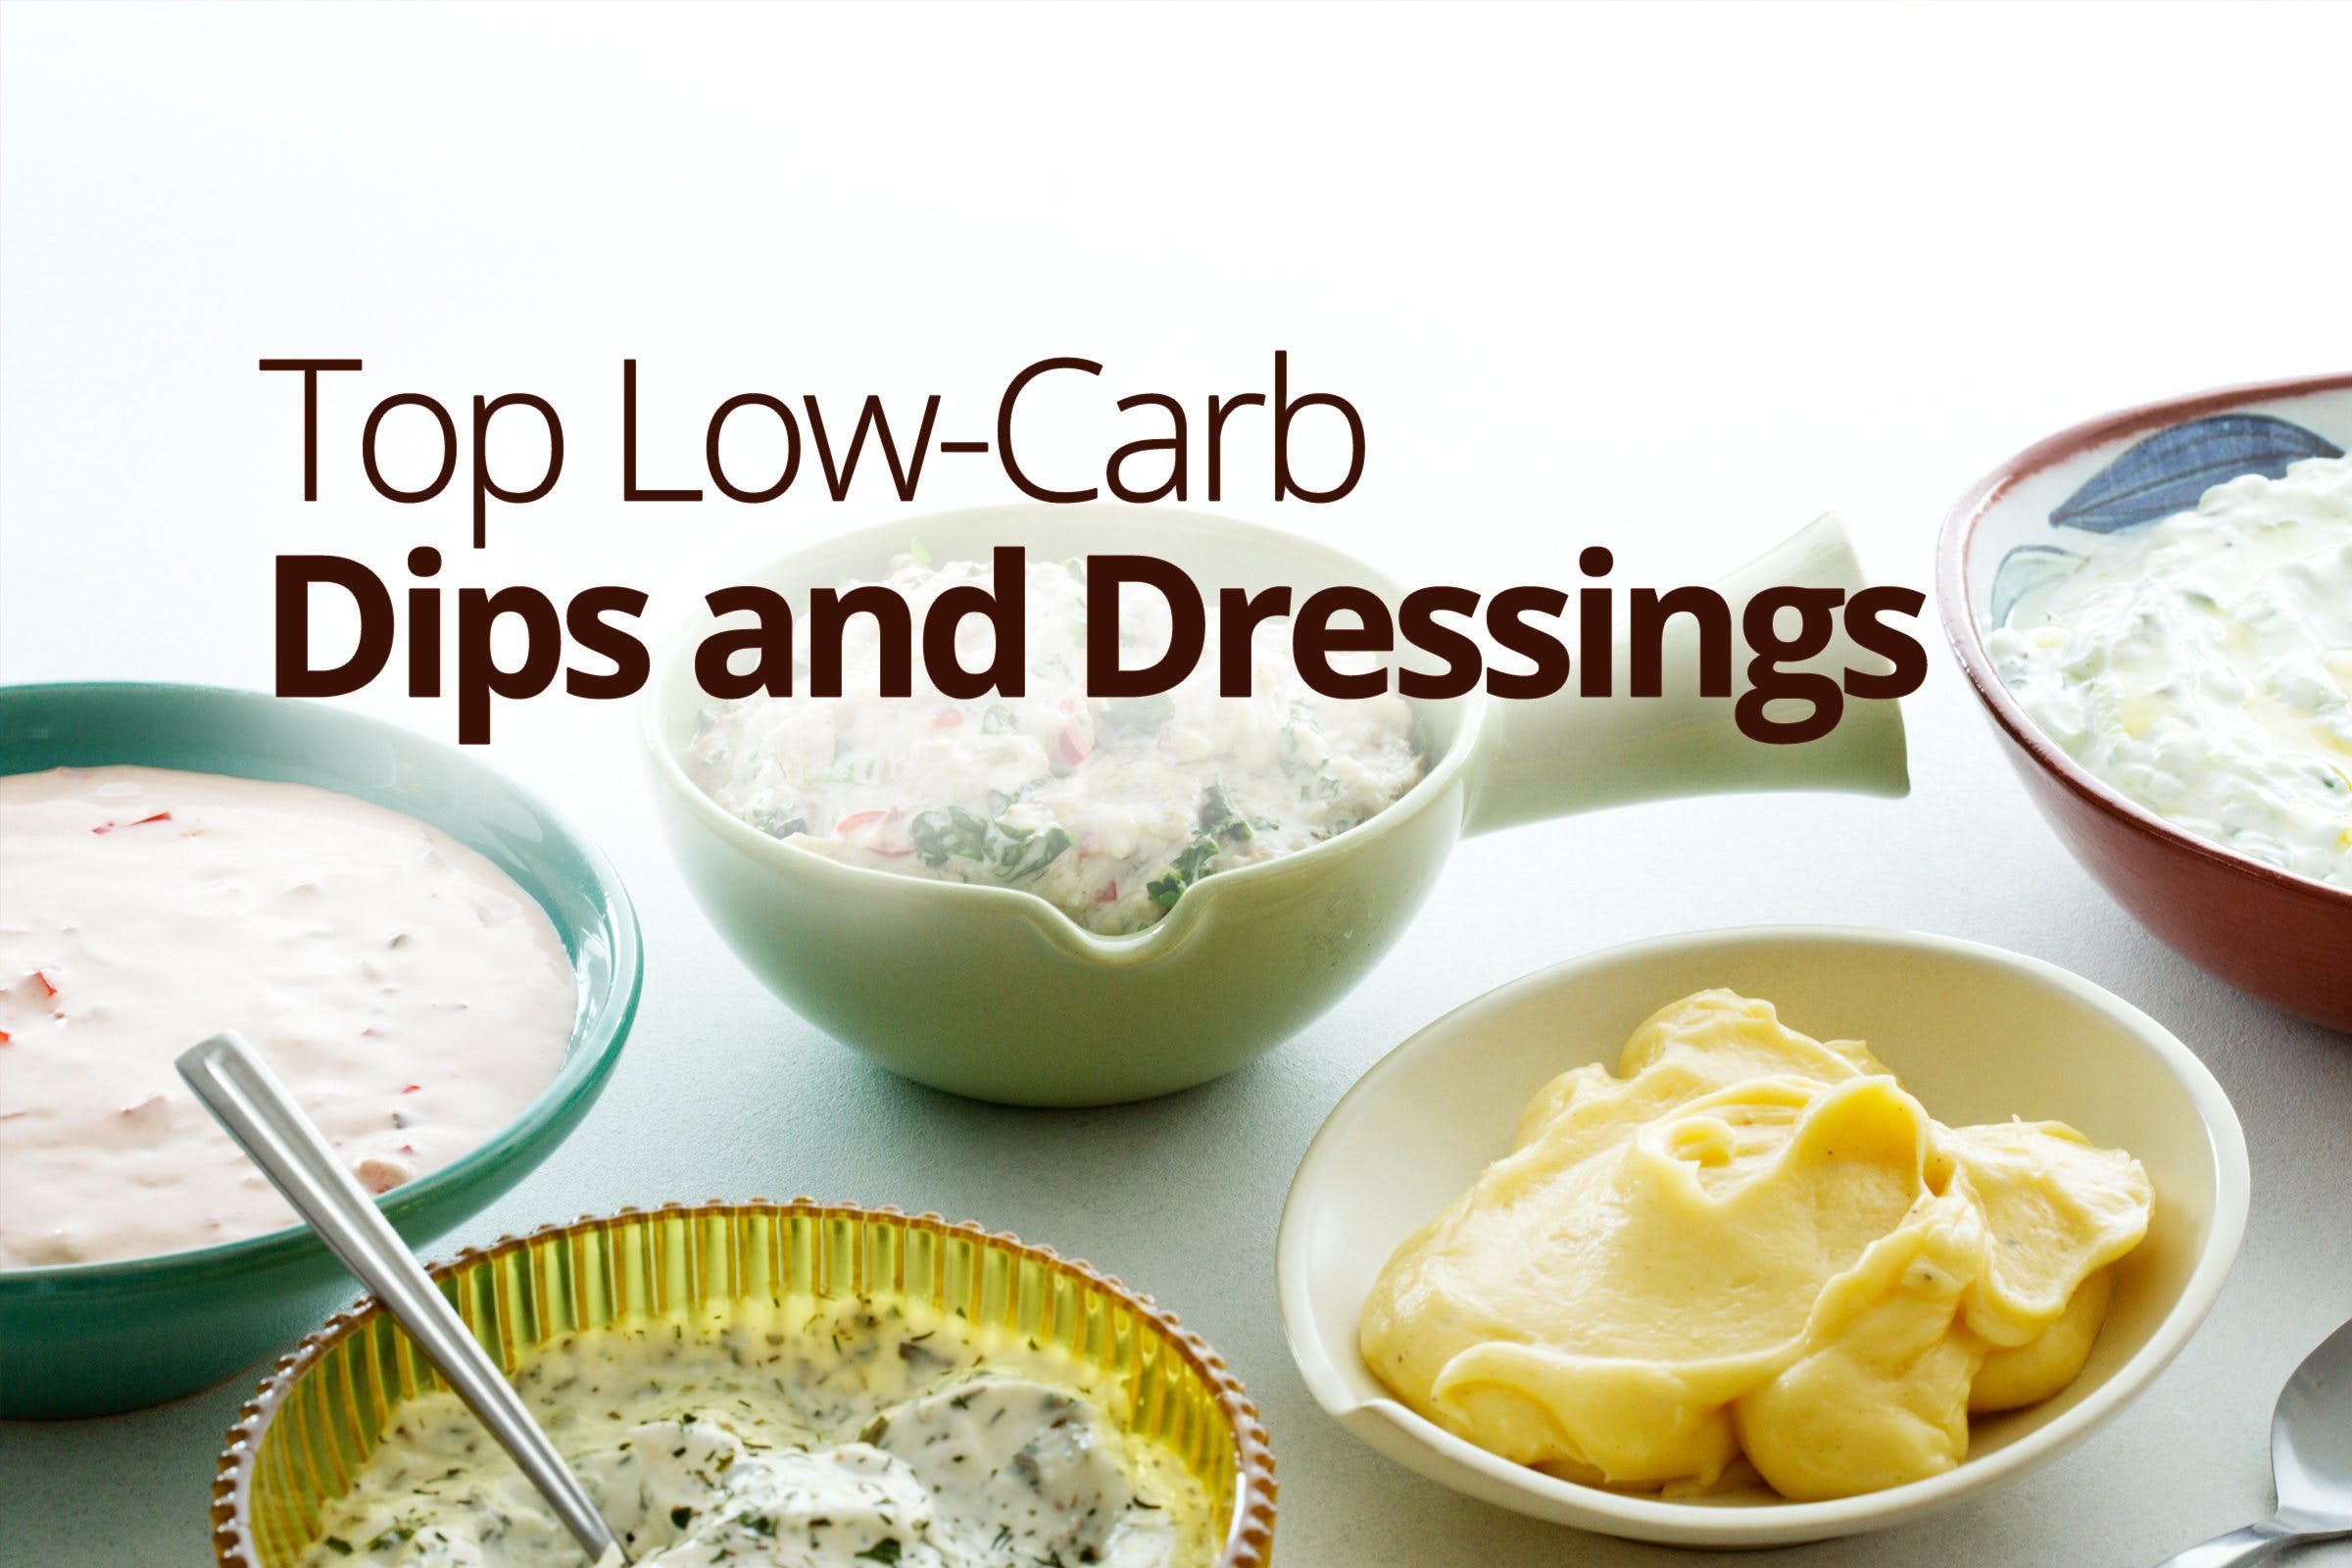 Top low-carb and keto dips and dressings